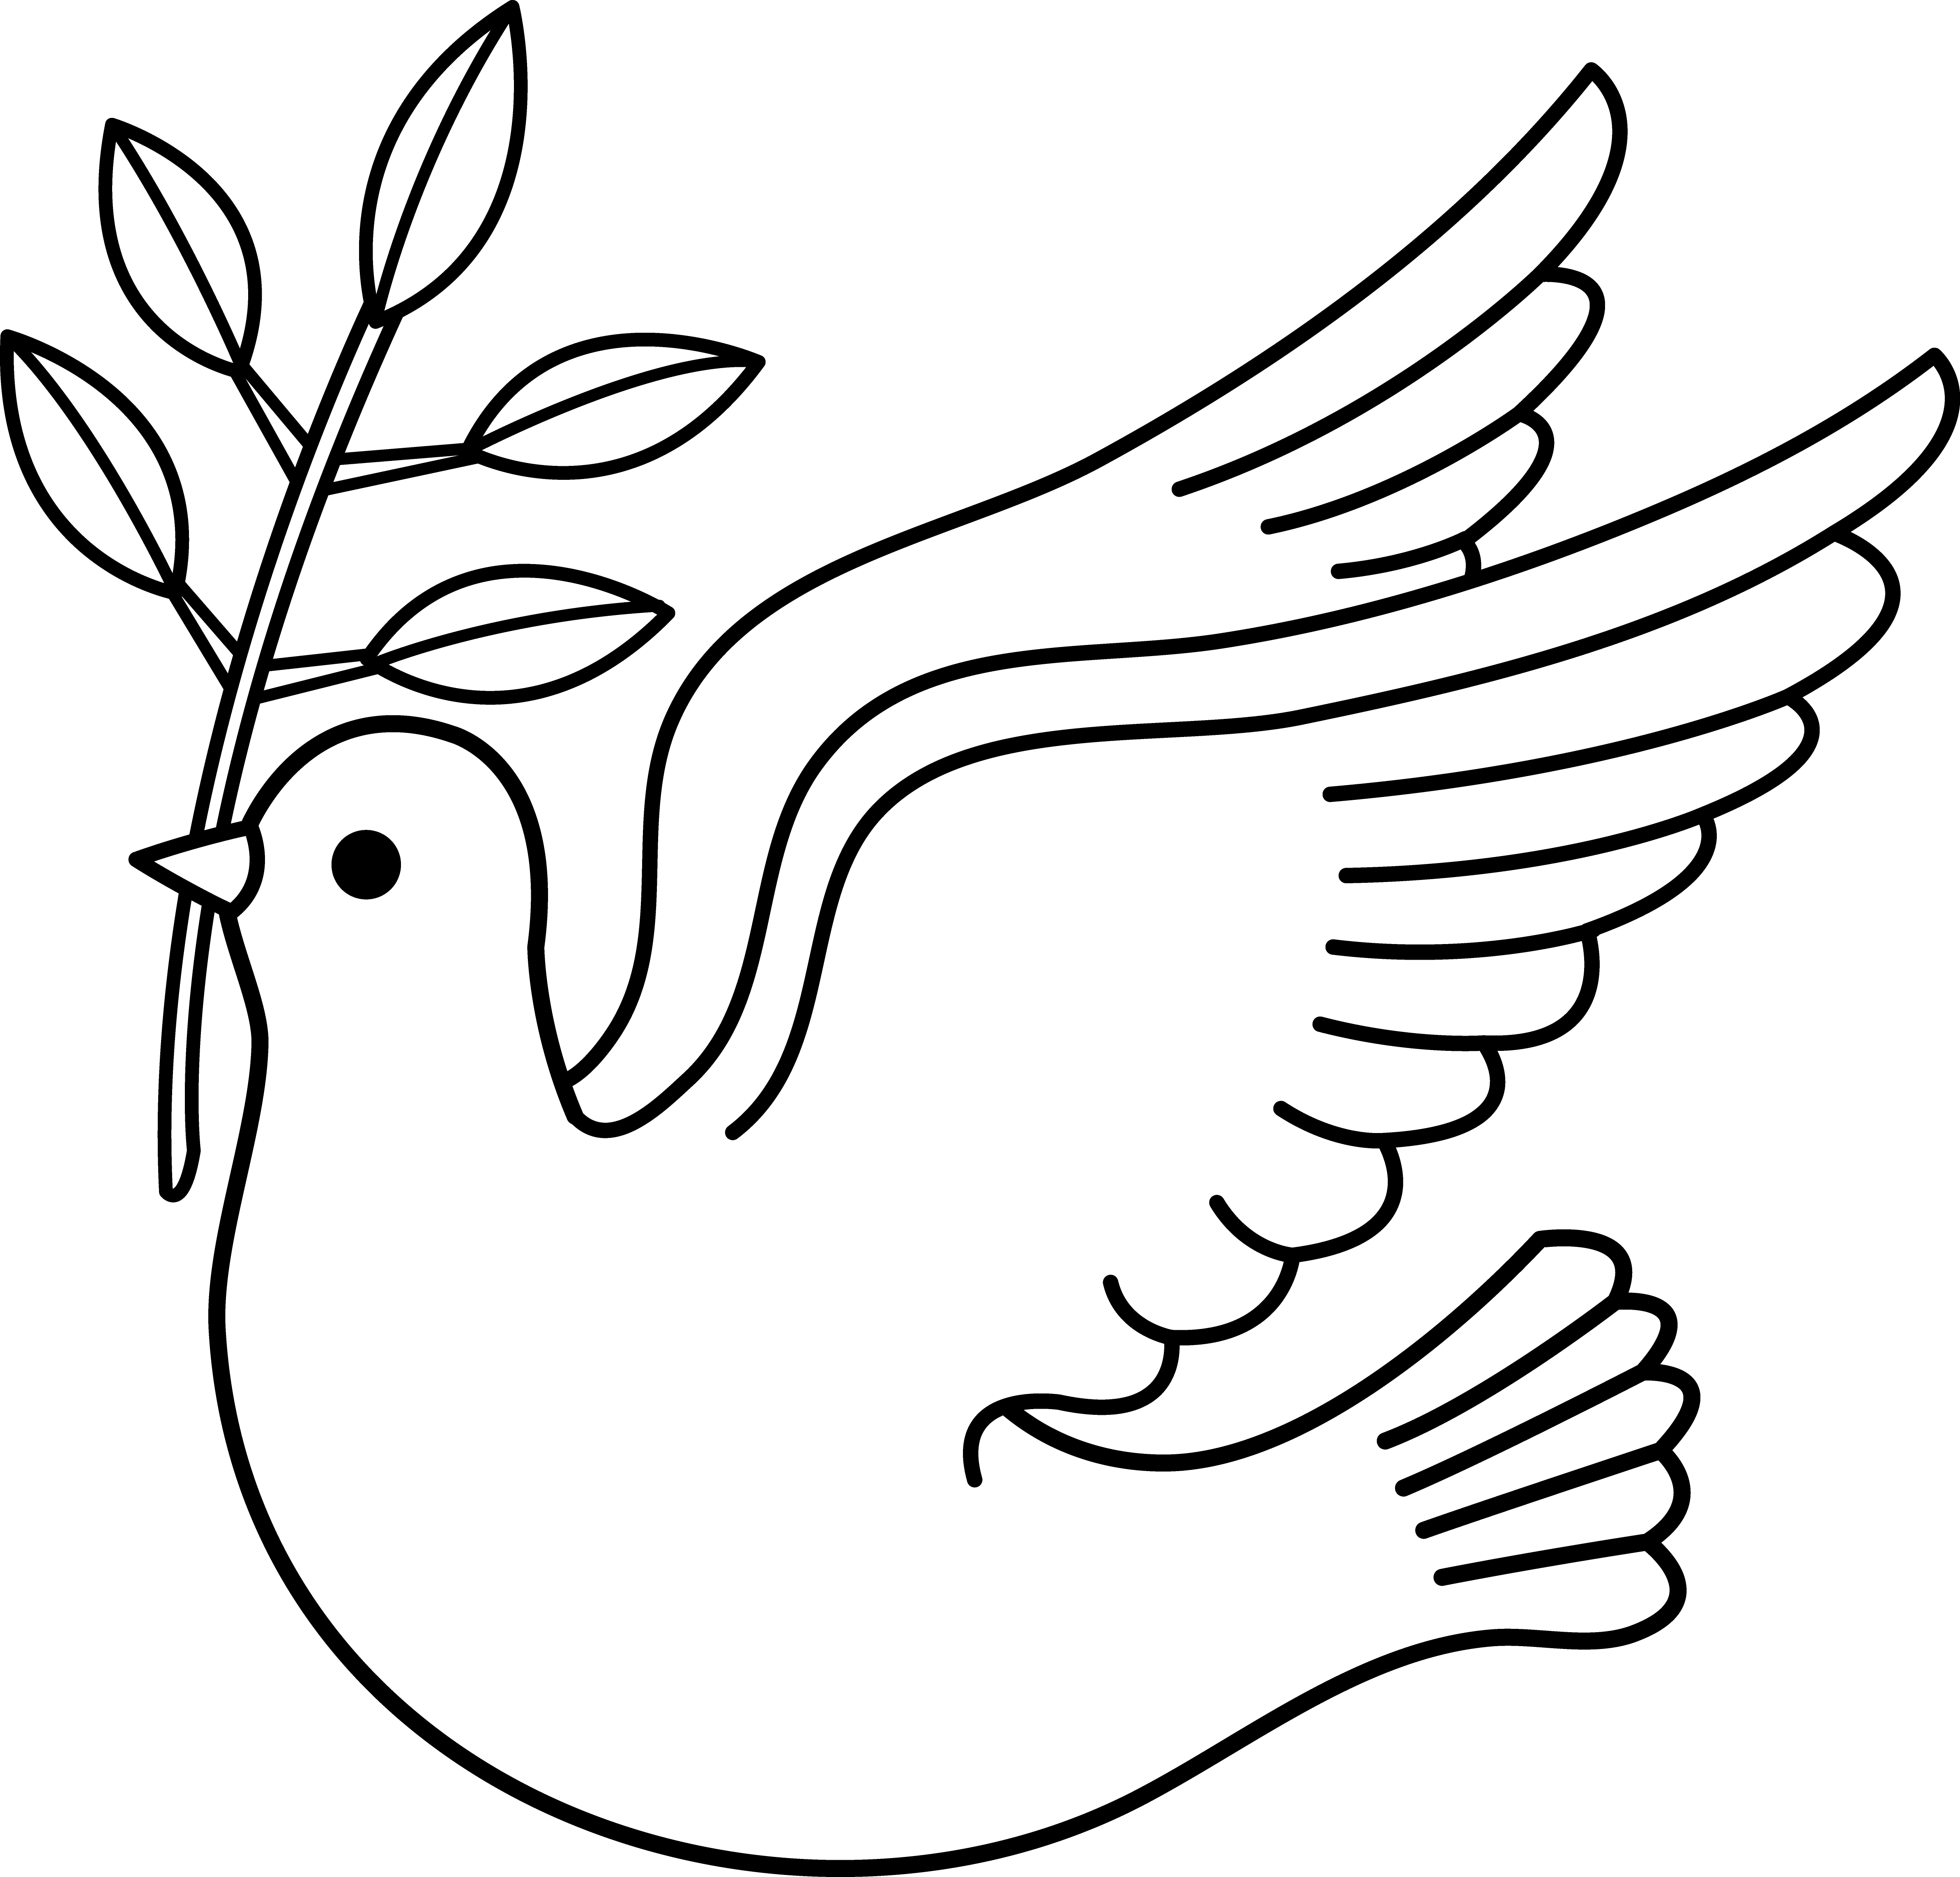 79 images of Peace Dove Clipart . You can use these free cliparts for ...